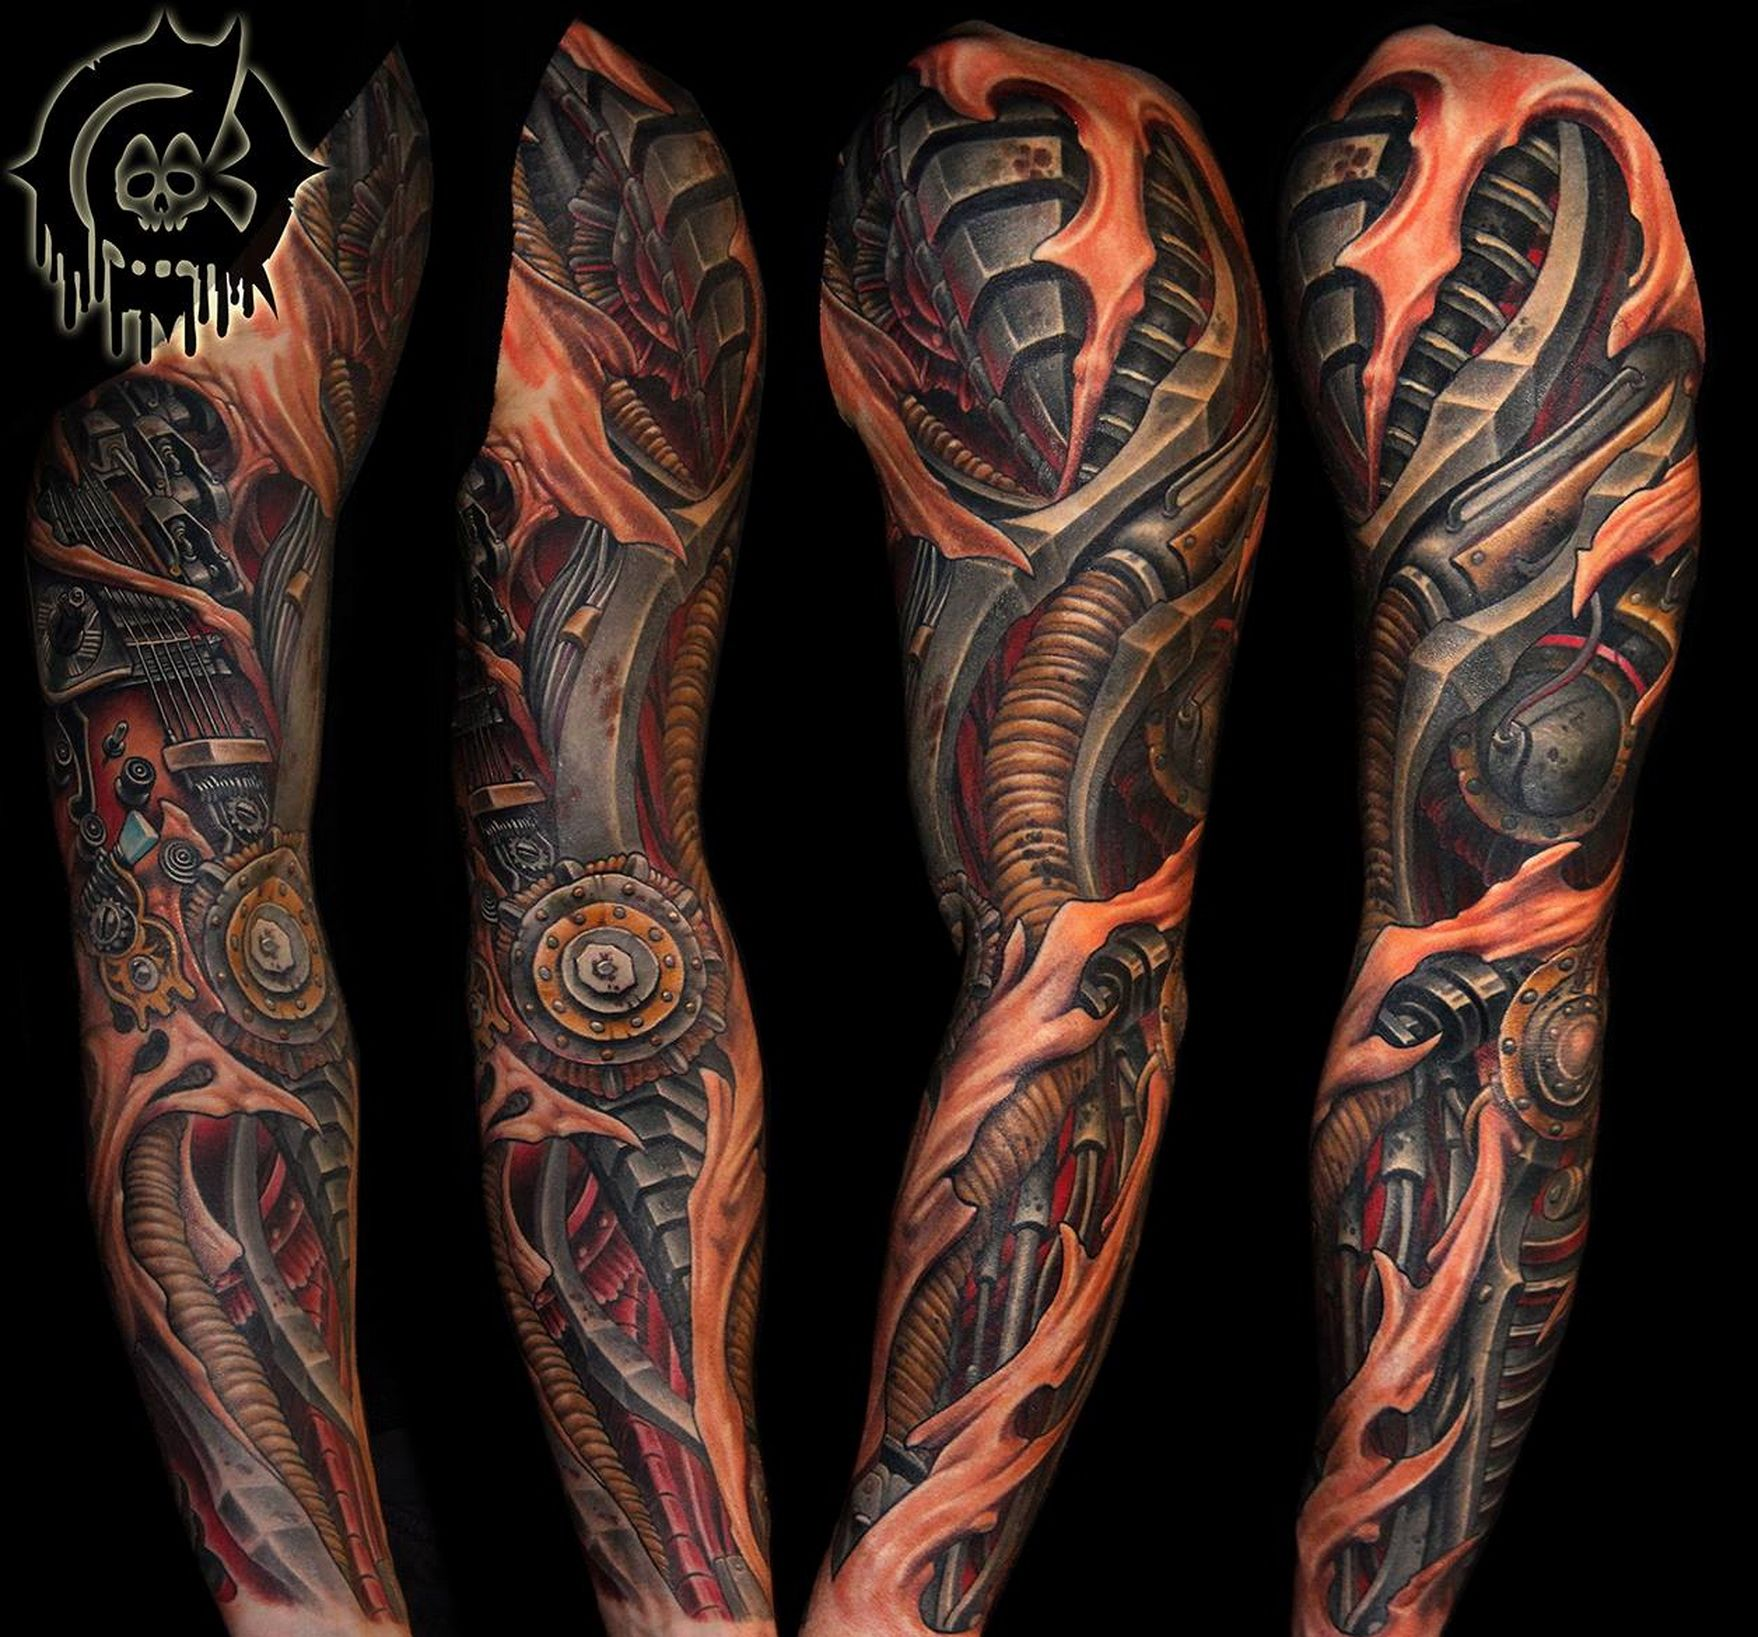 Biomechanical Tattoo Sleeve by Julian Siebert